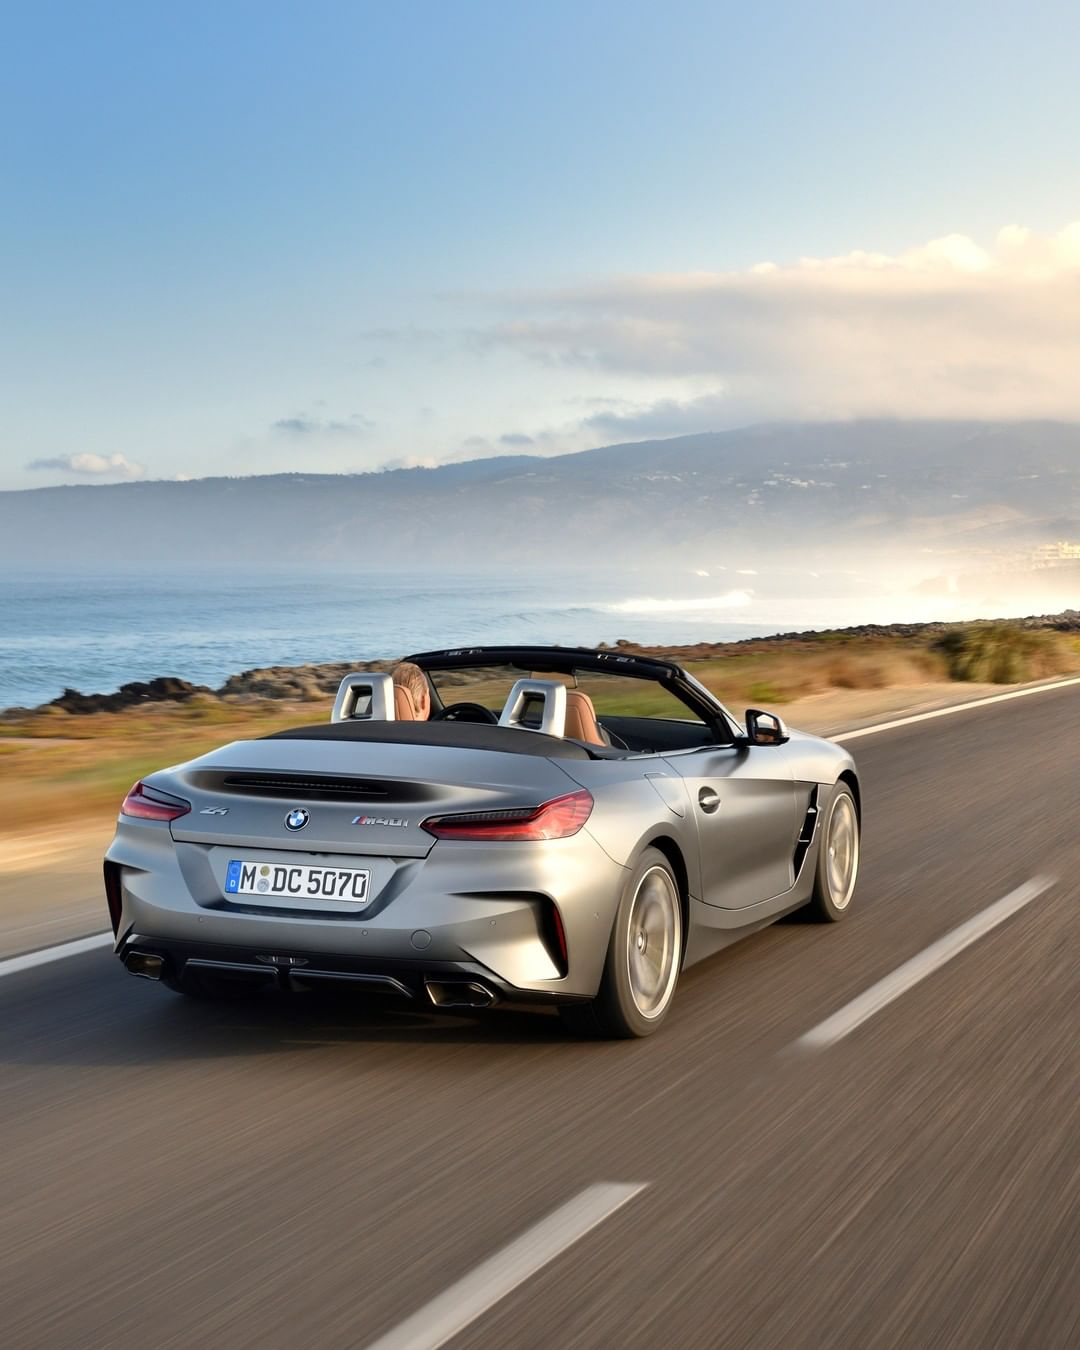 2019 Bmw Z4: Unfold Your Freedom. The All-new BMW Z4. __ BMW Z4 M40i